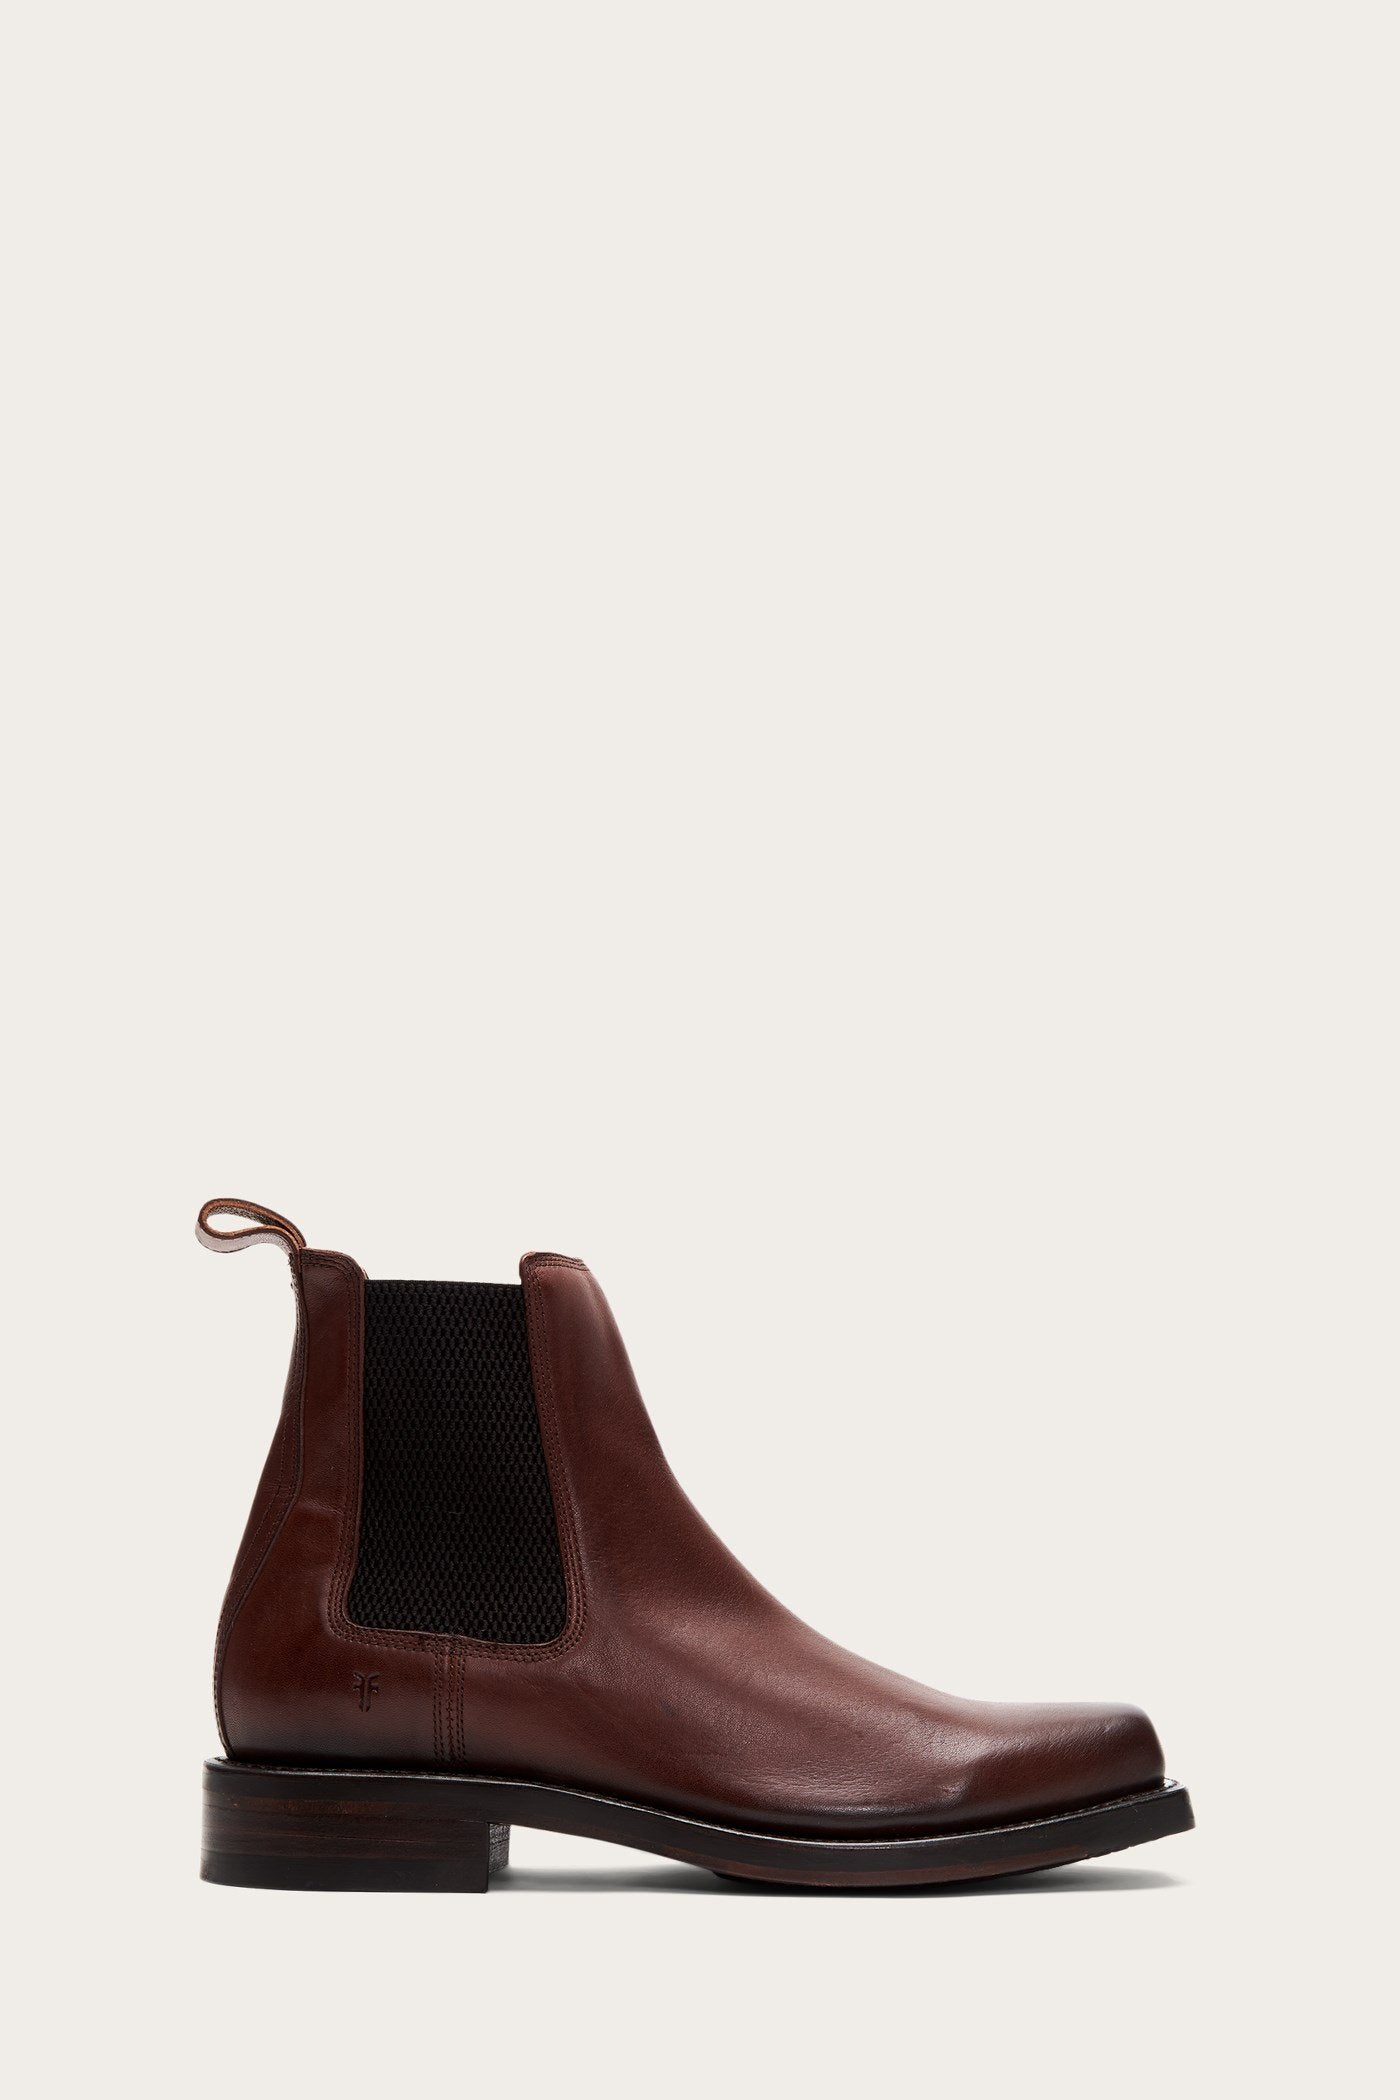 FRYE Conway Chelsea Boots